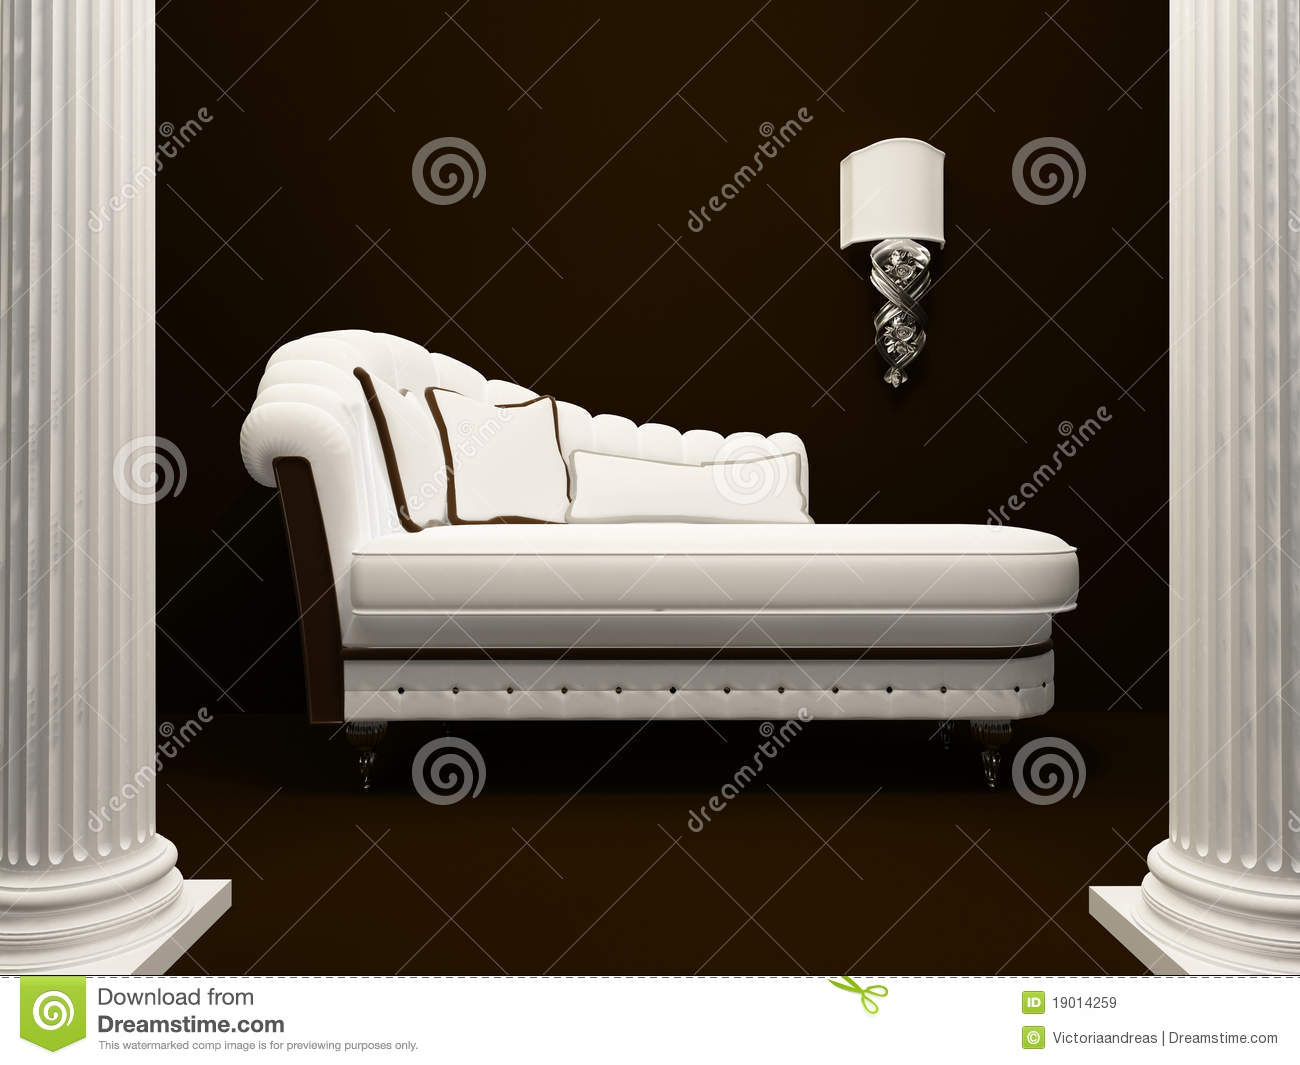 klassisches sofa mitten in pfosten lizenzfreie stockbilder. Black Bedroom Furniture Sets. Home Design Ideas